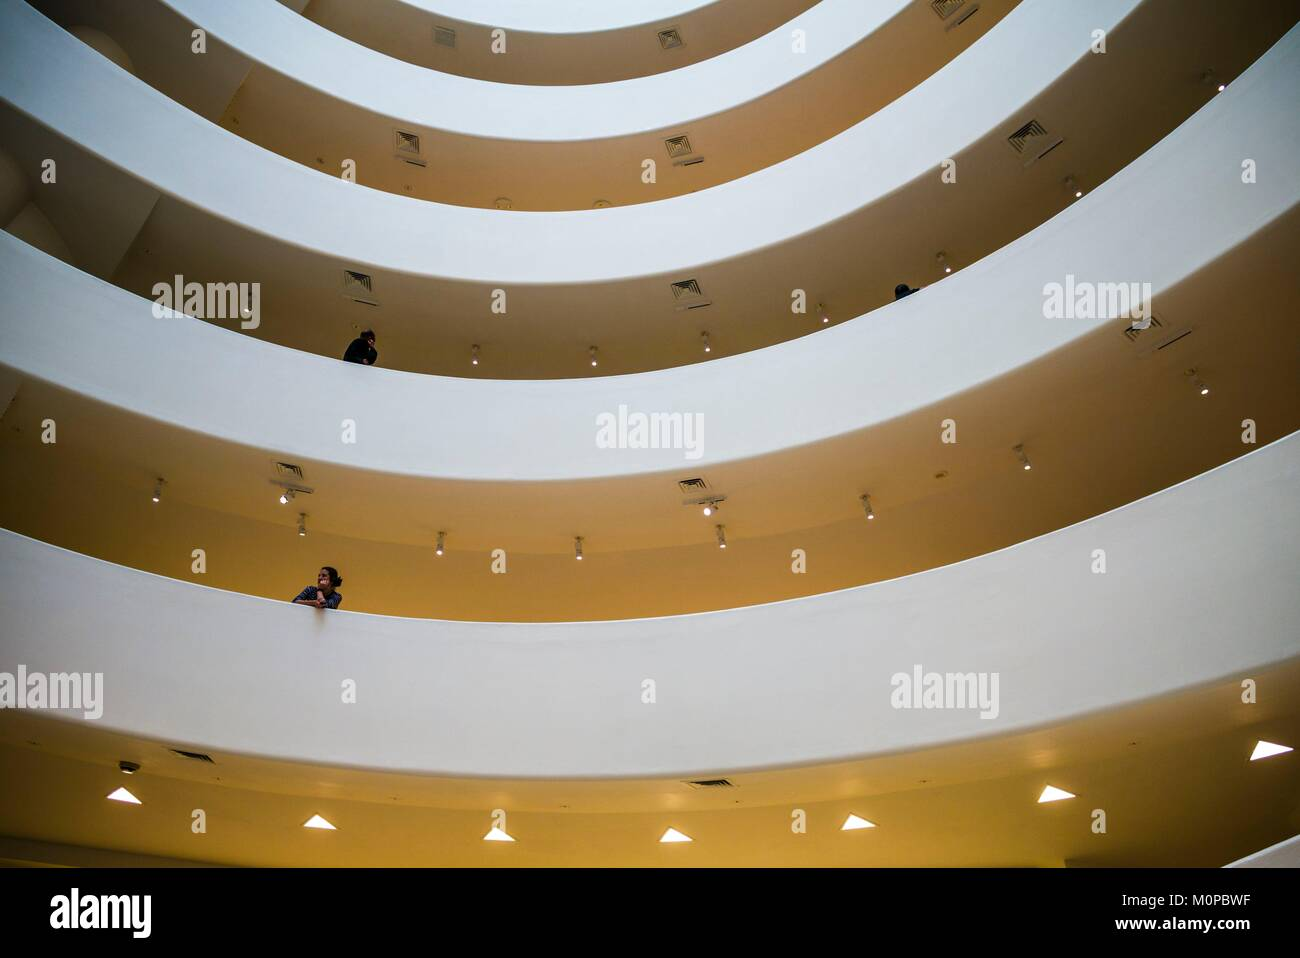 Stati Uniti,New York,New York City,Upper East Side,Museo Guggenheim,atrio interno Immagini Stock